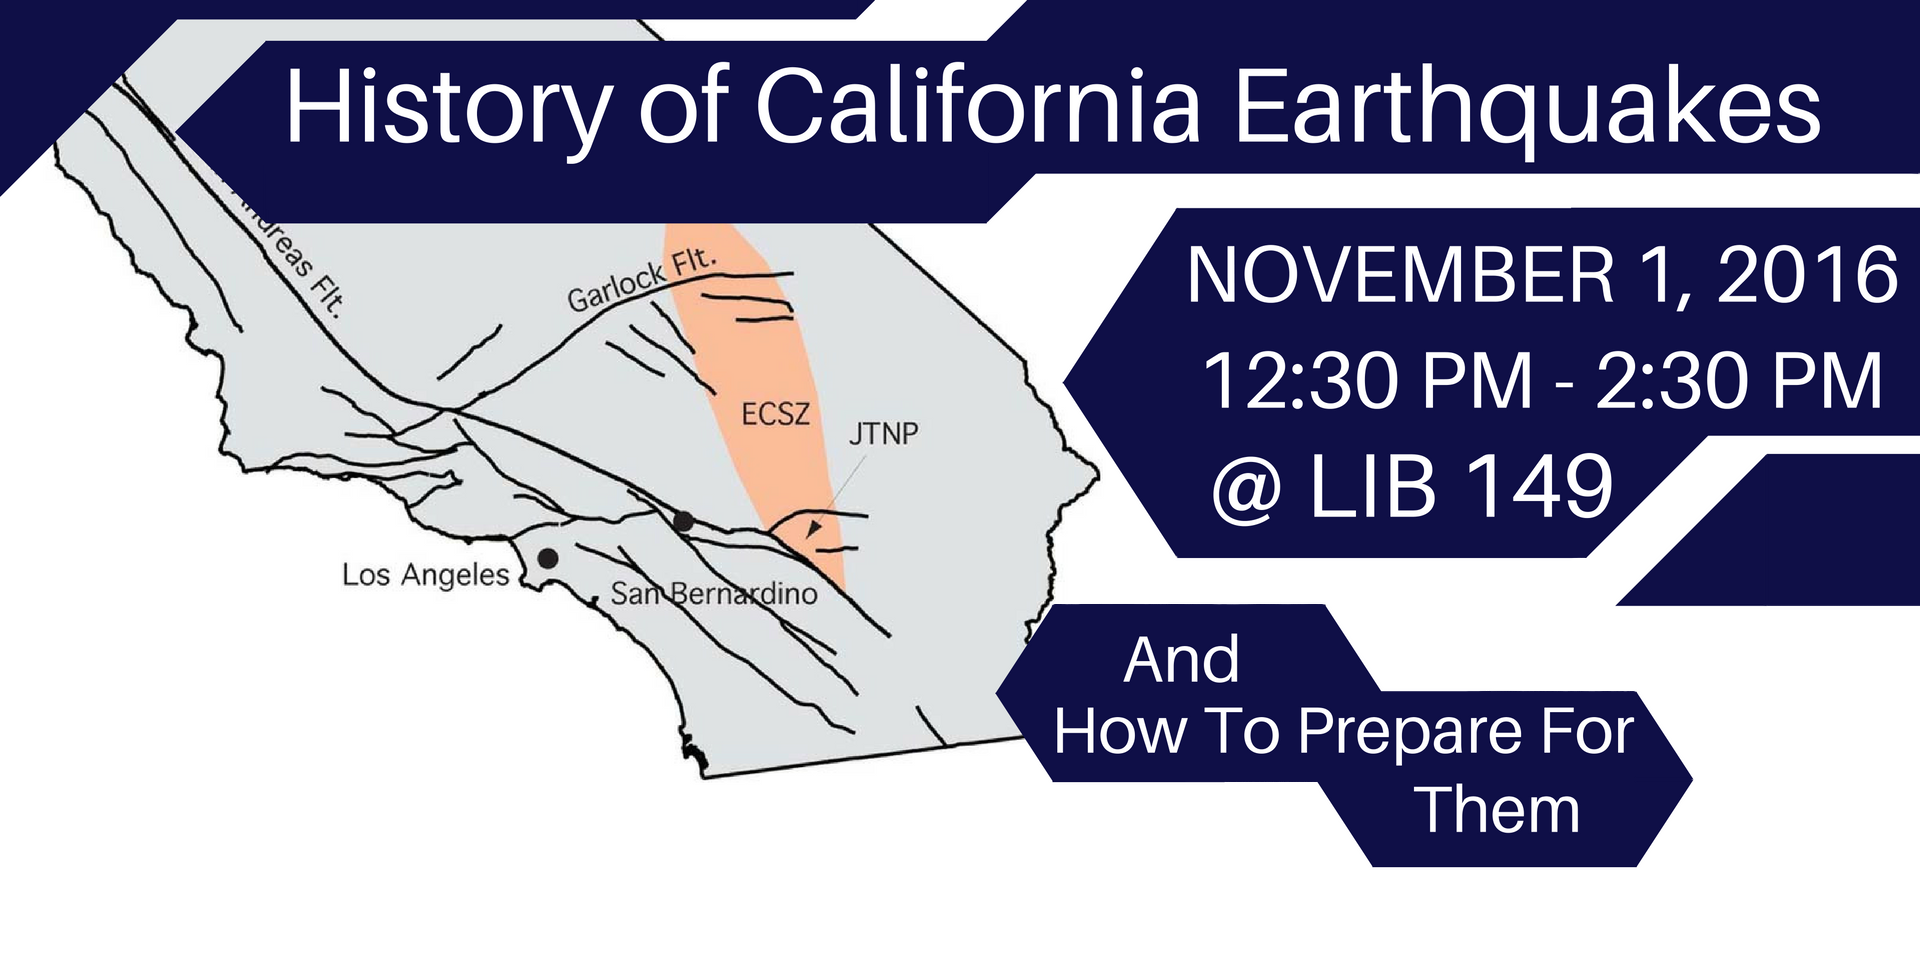 November 1 > History of California Earthquakes